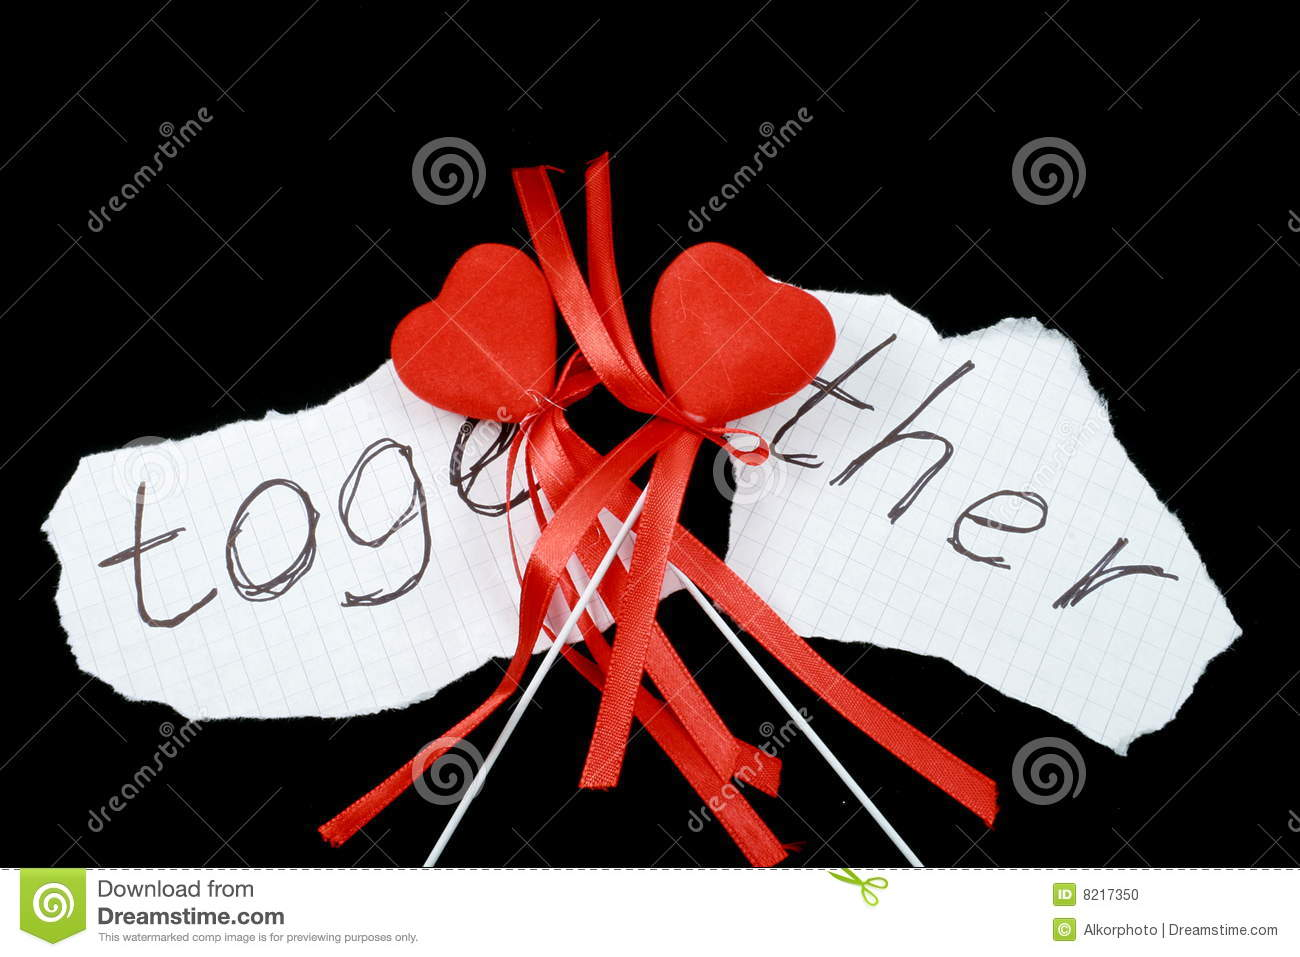 Two hearts together stock photo. Image of sadness, heart ...